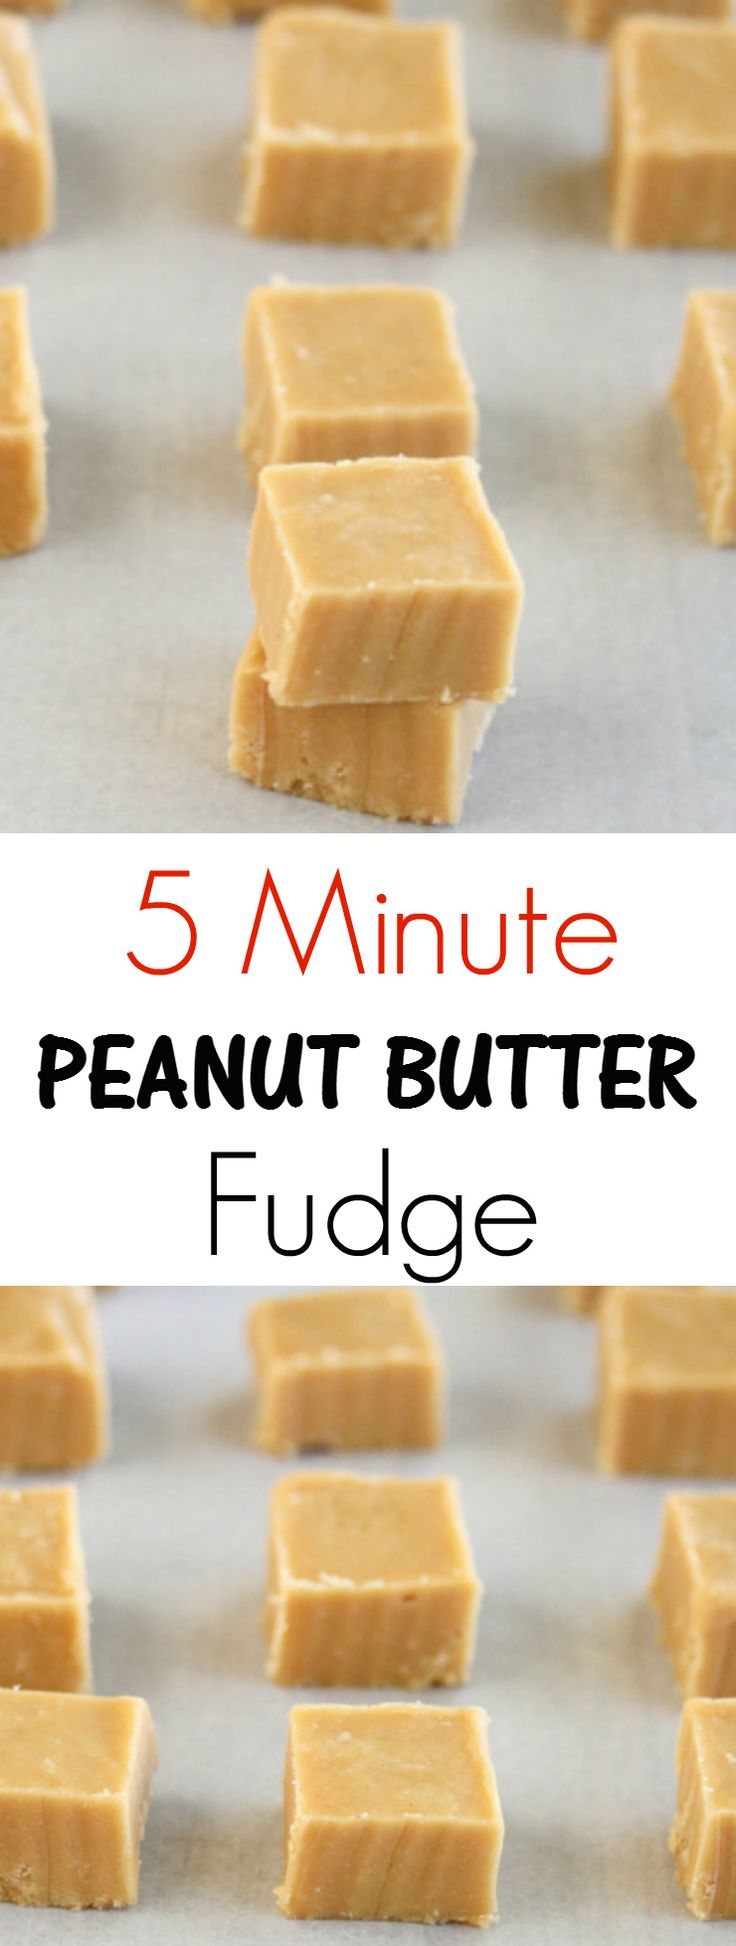 Peanut butter candy recipe powdered sugar for Easy sweet treats with peanut butter